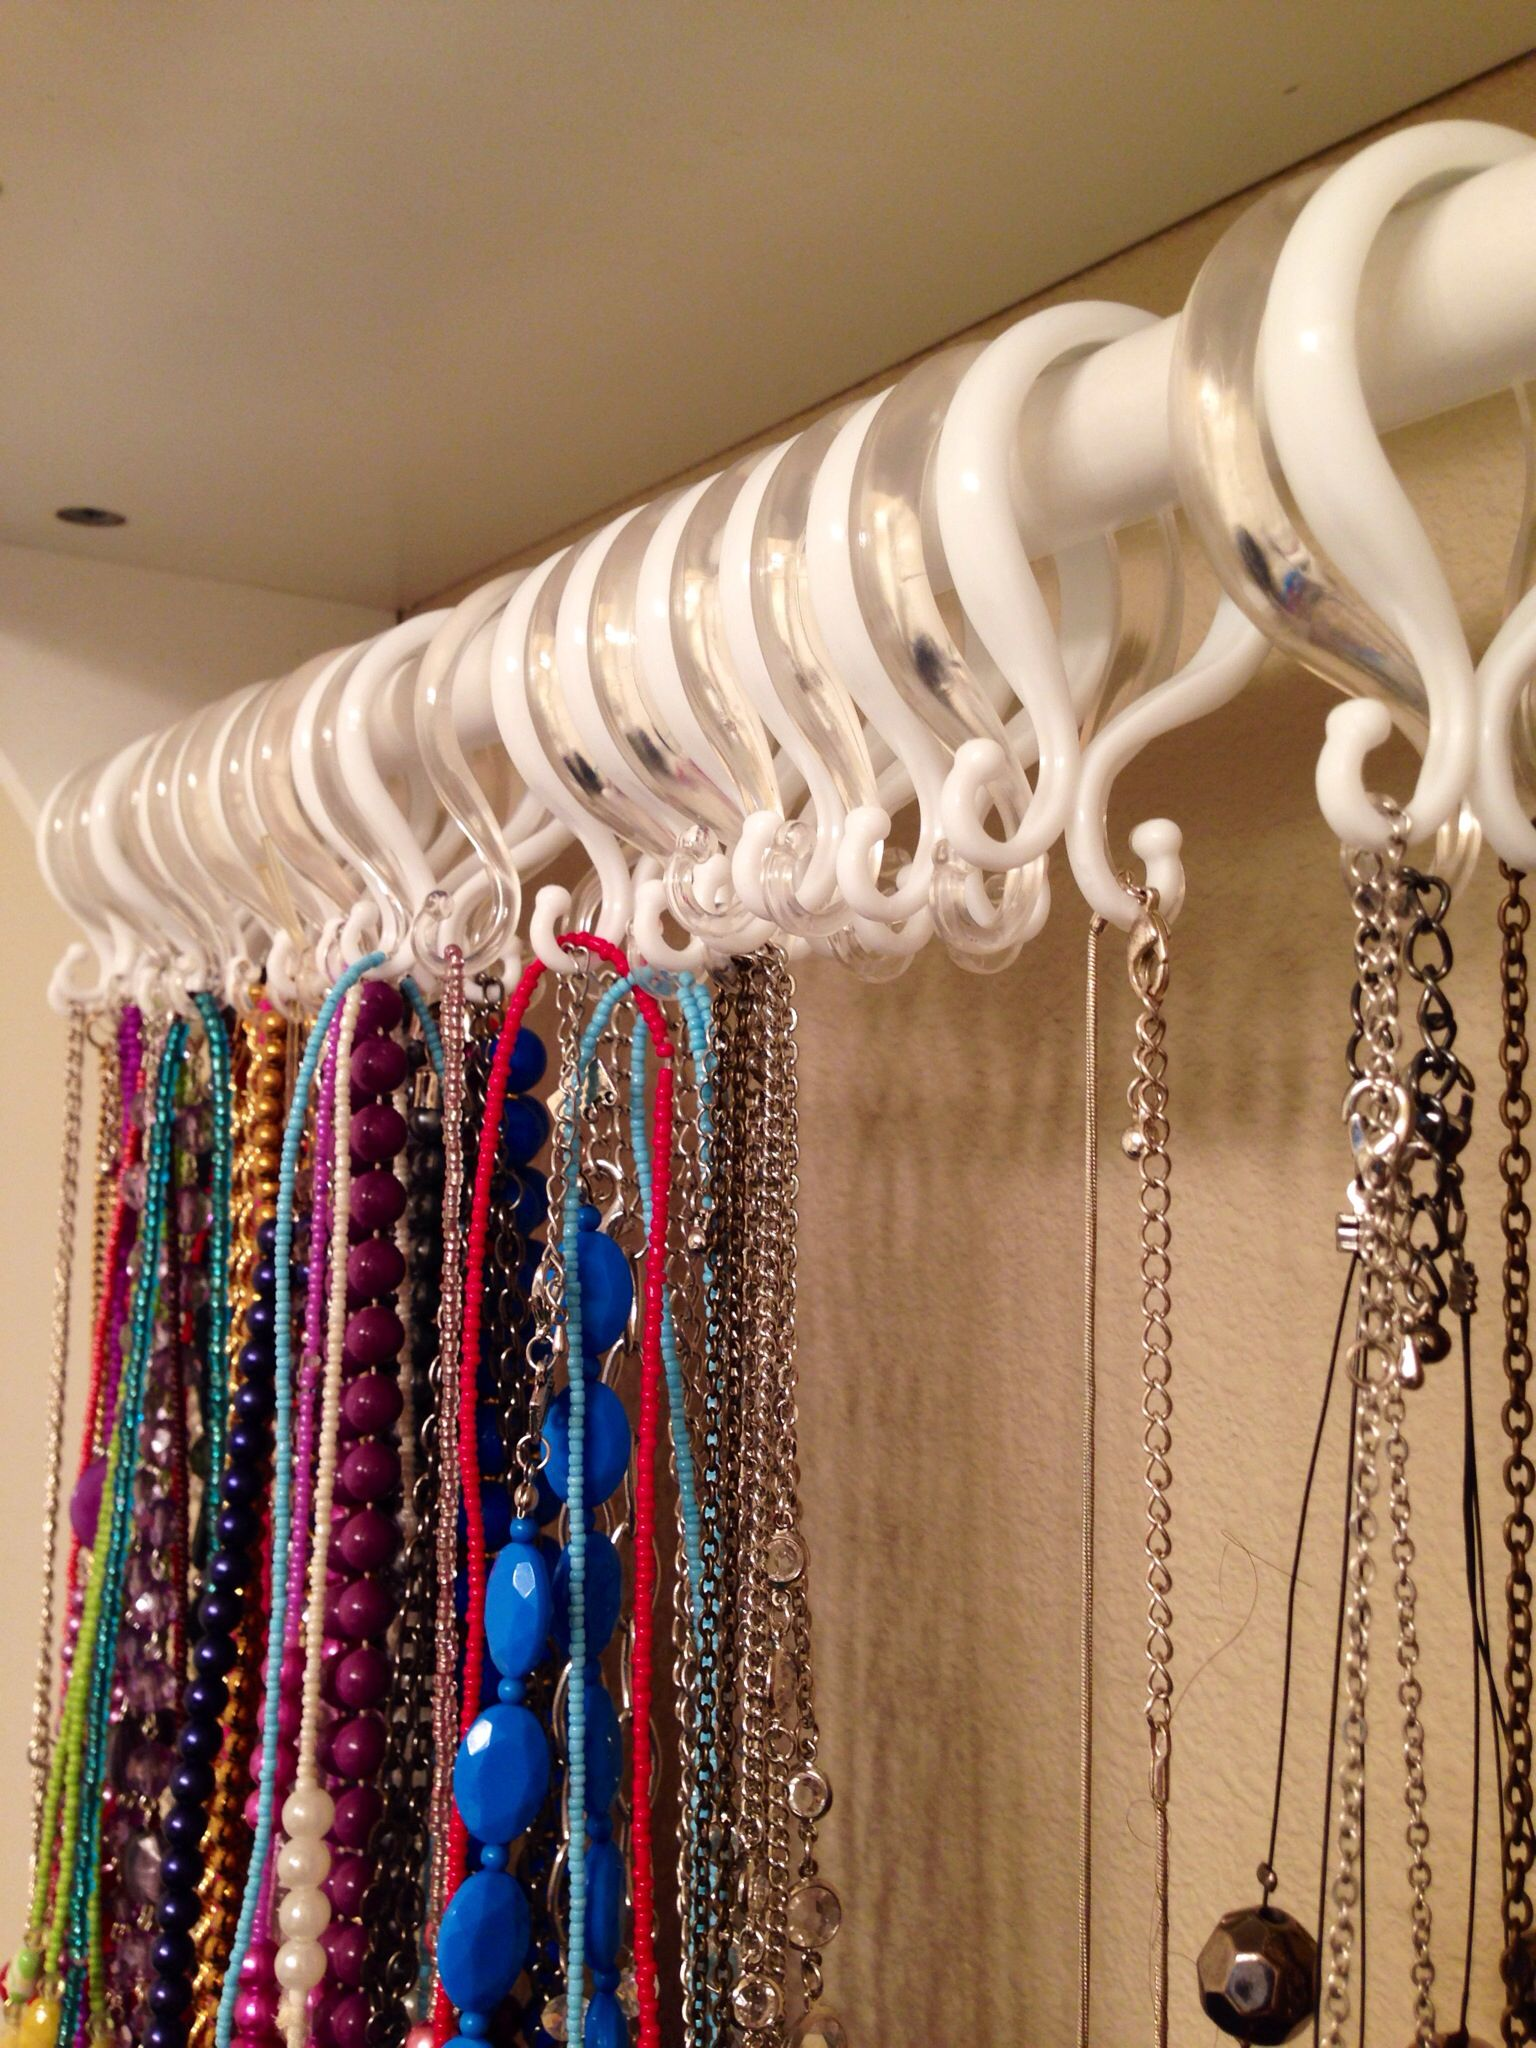 A Closer Look I Used Shower Curtain Rings I Found At Big Lots Totaling A Whopping 12 To Hang My Enormo Shower